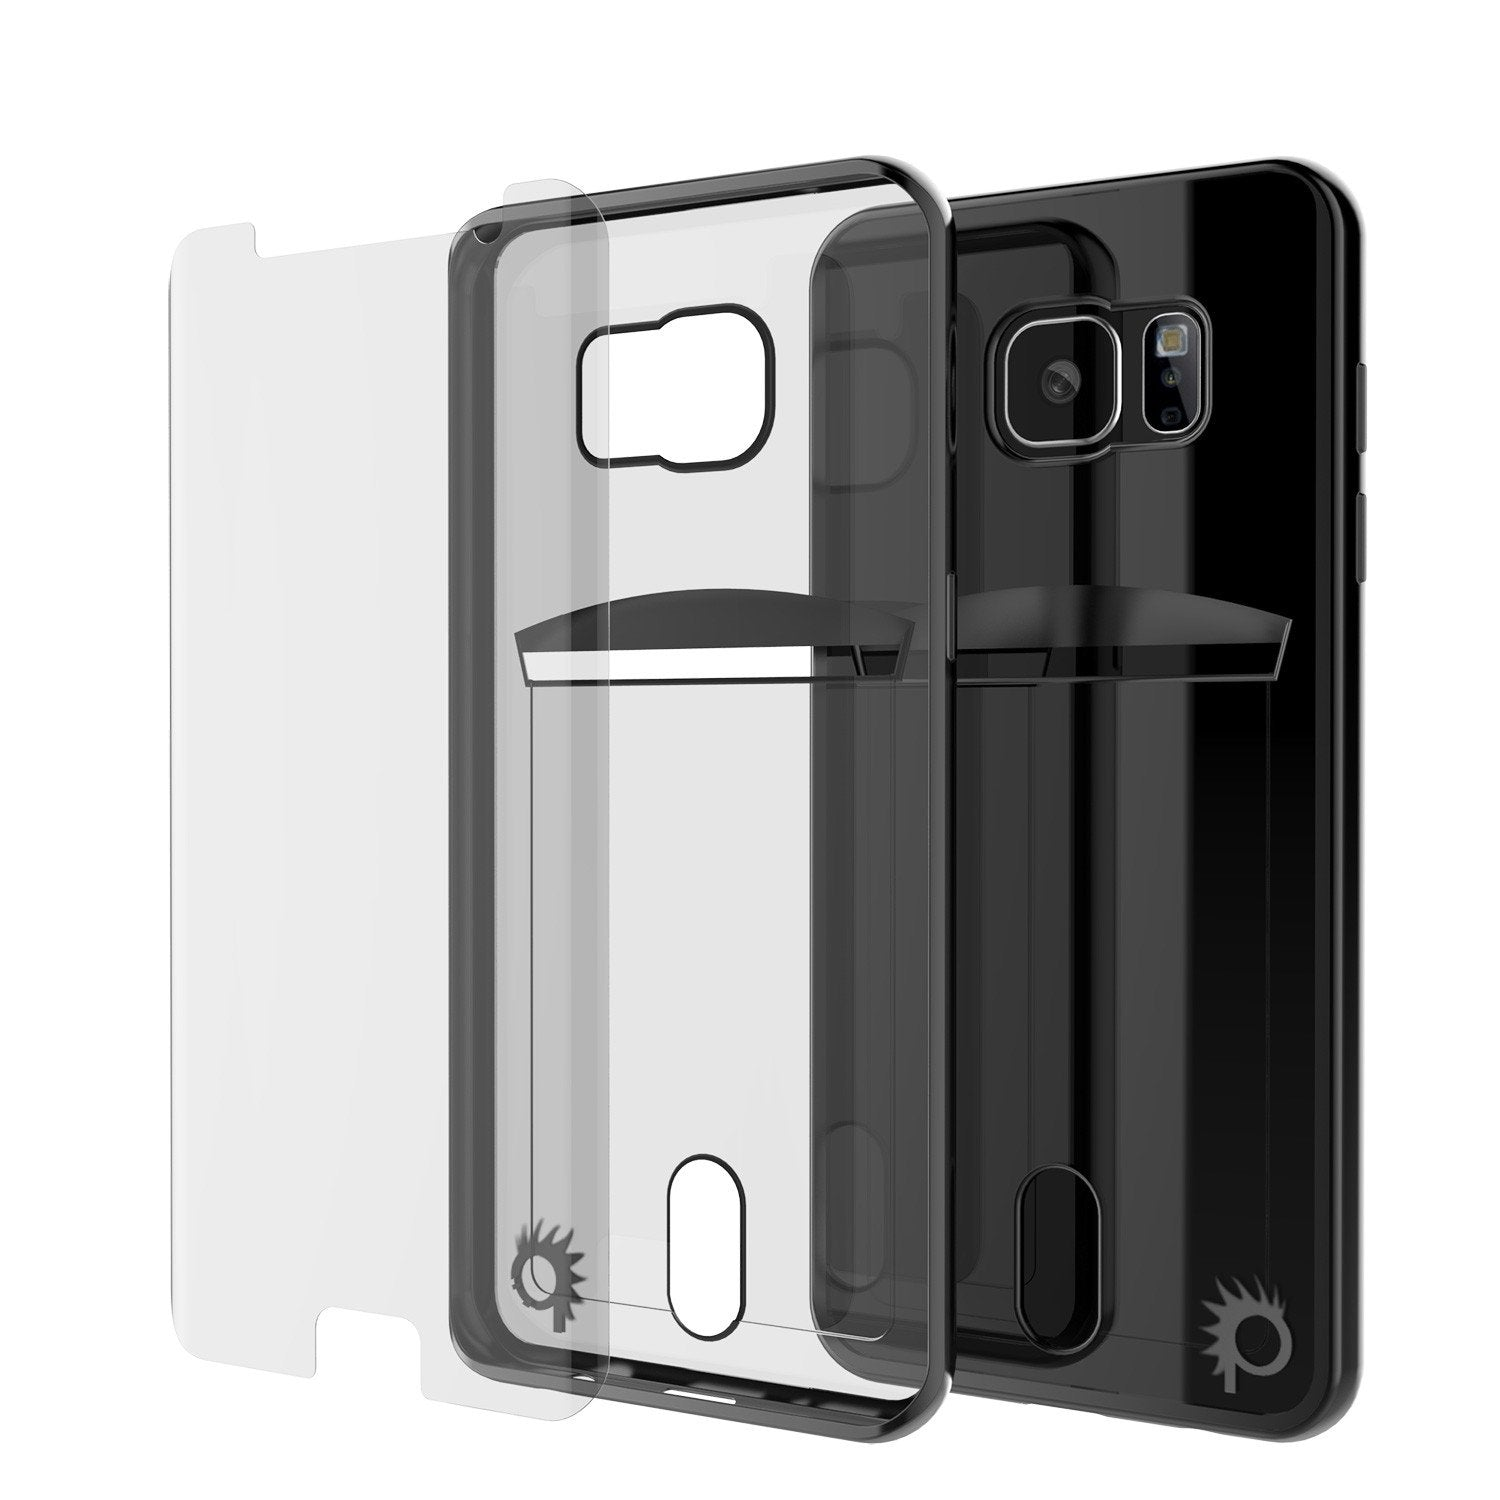 Galaxy S6 EDGE+ Plus Case, PUNKCASE® LUCID Black Series | Card Slot | SHIELD Screen Protector